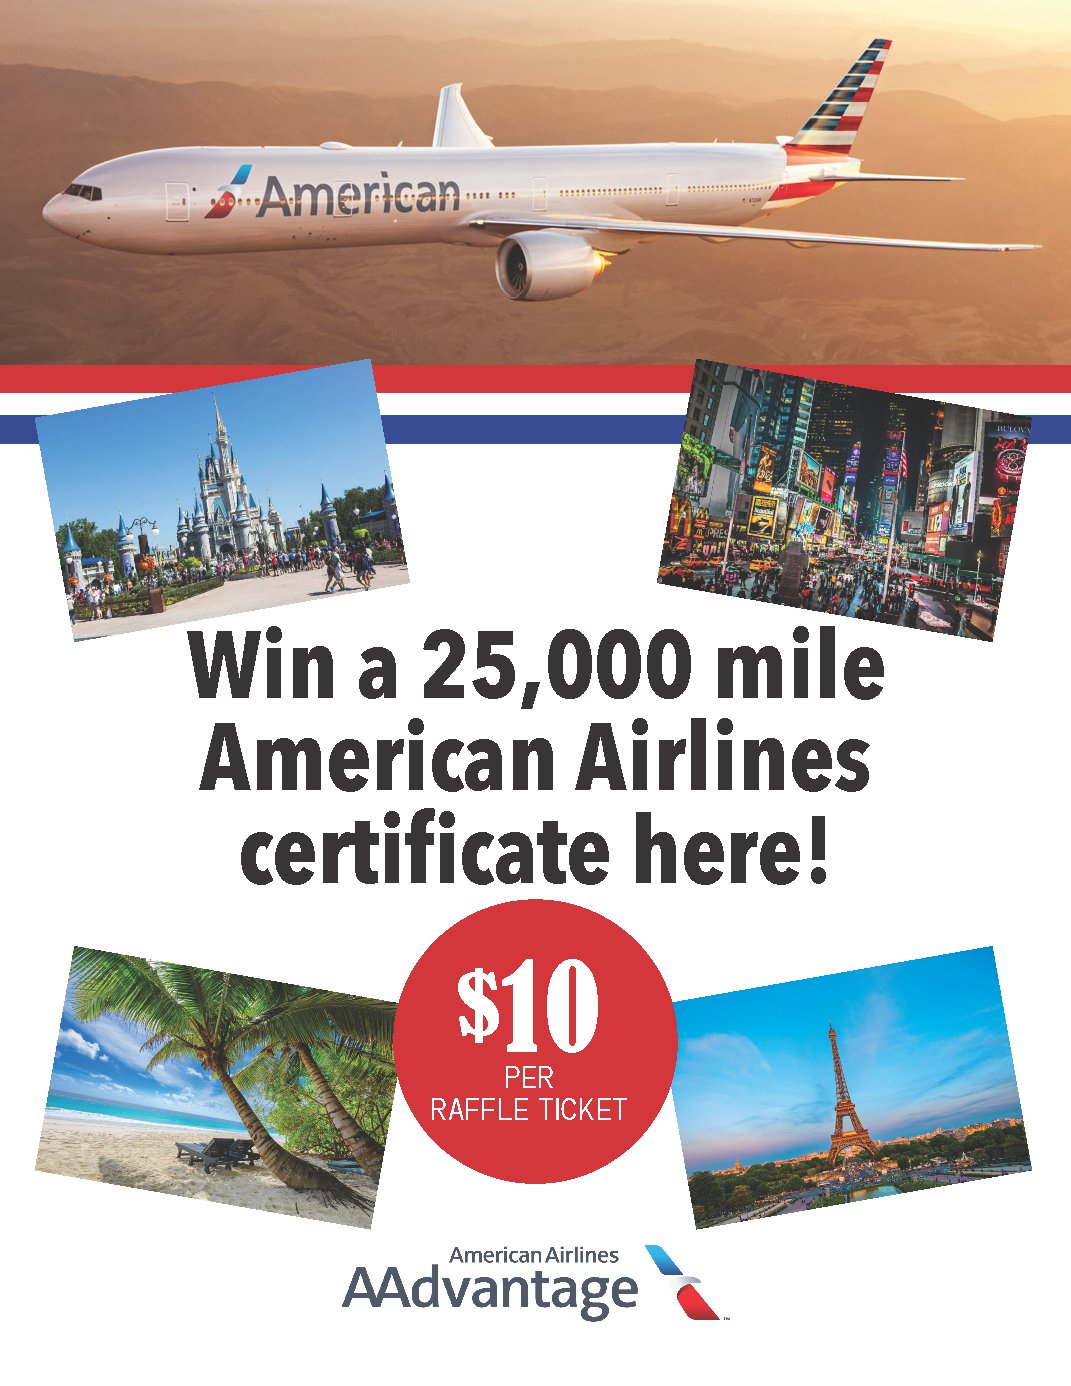 American Airlines Raffle